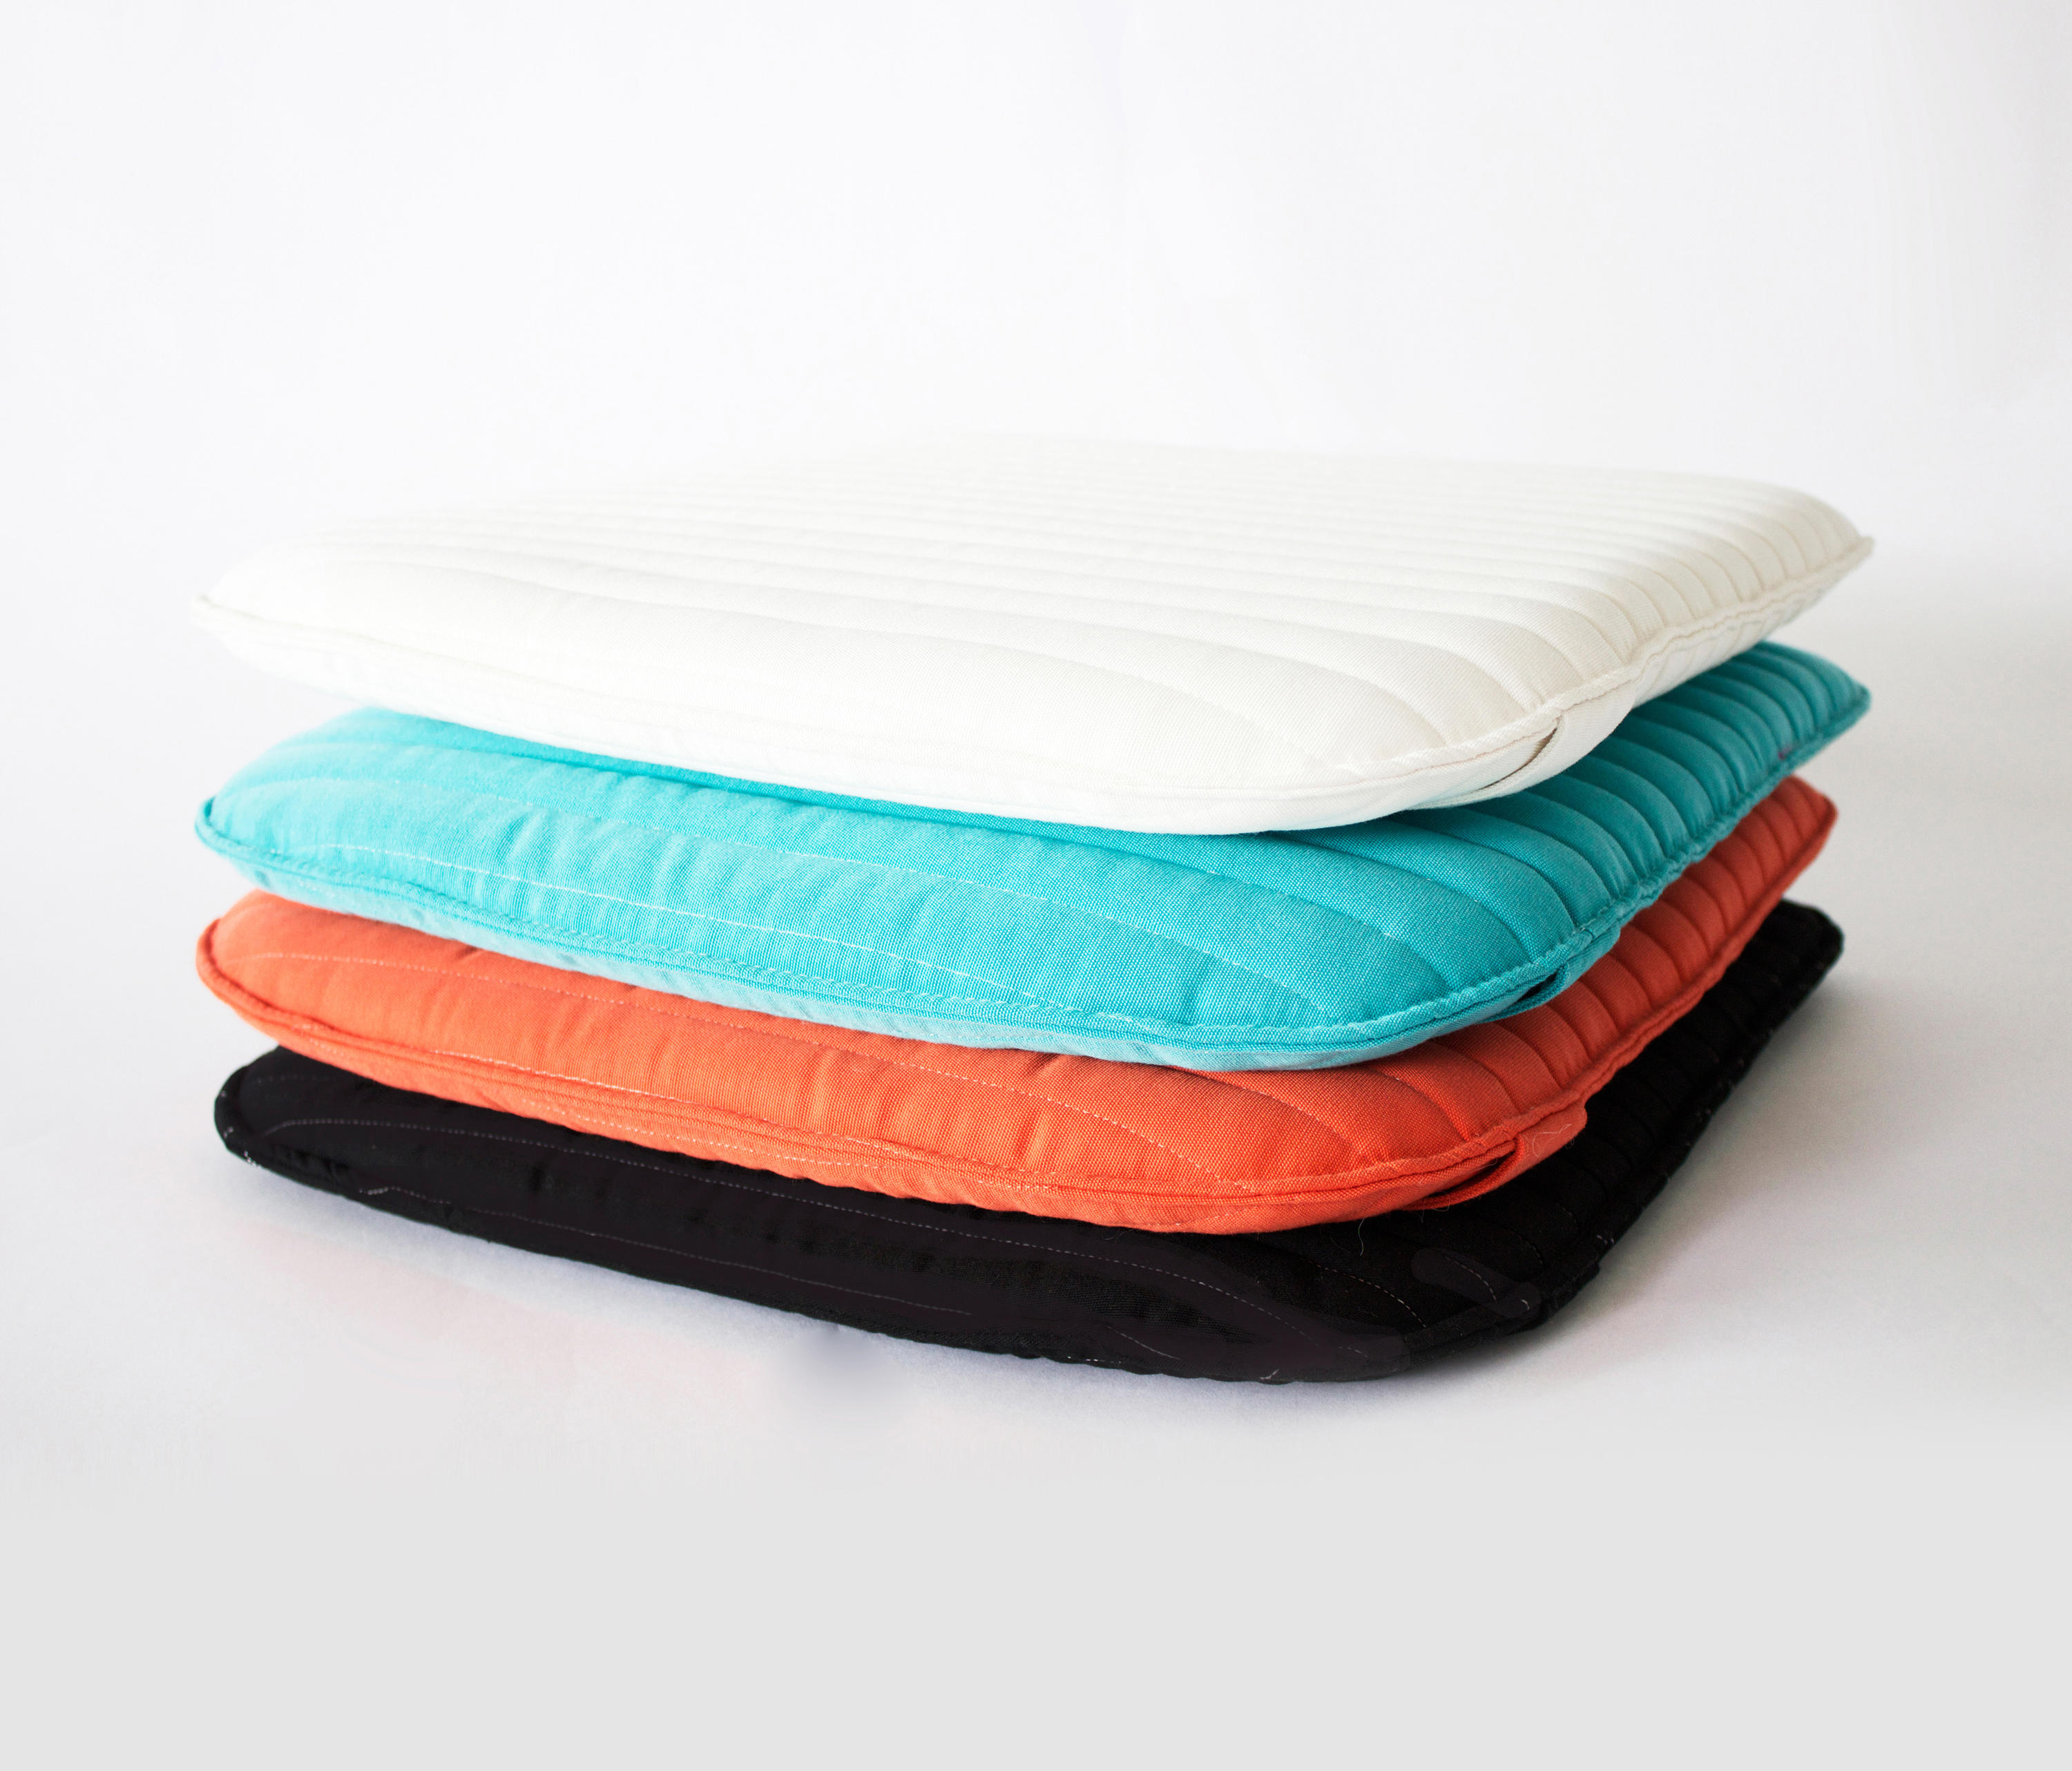 QUILTED SUNBRELLA PAD Seat cushions from Bend Goods